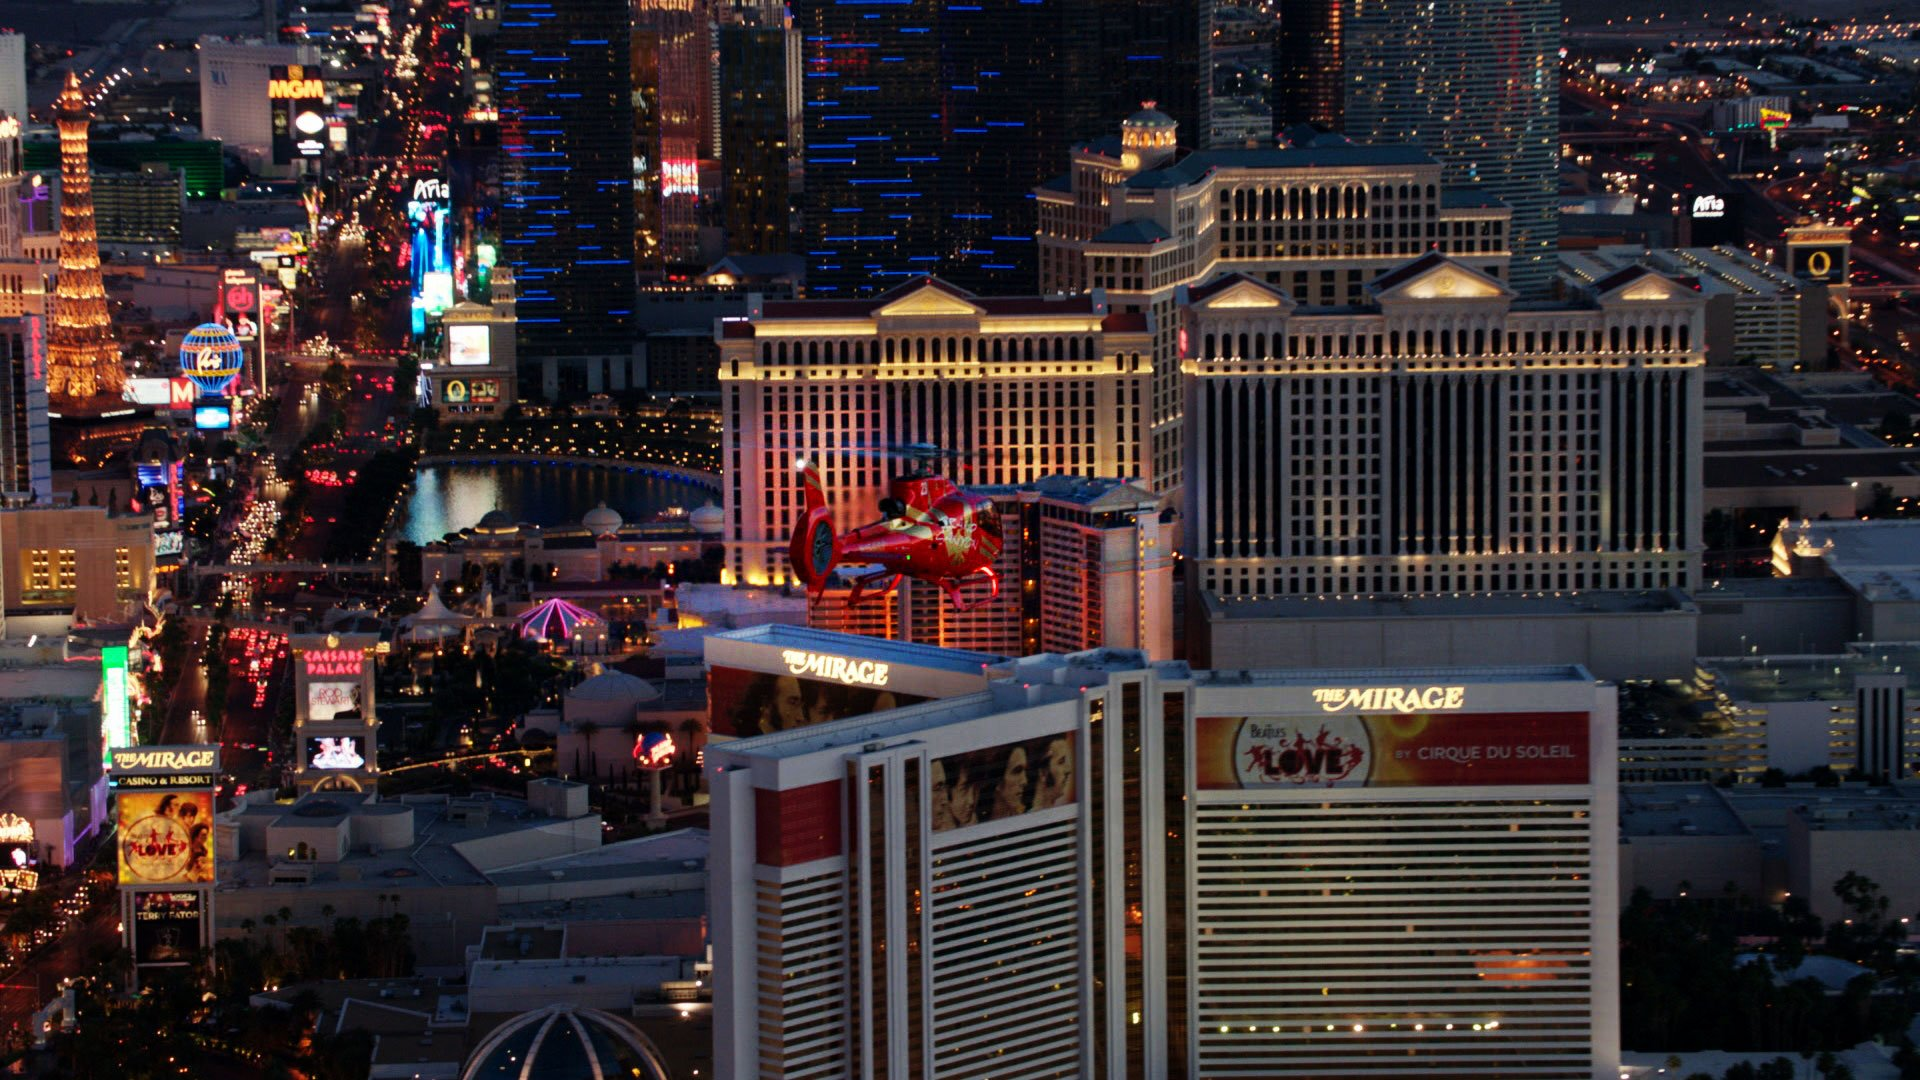 EC-130 red helicopter flying over the Las Vegas Strip